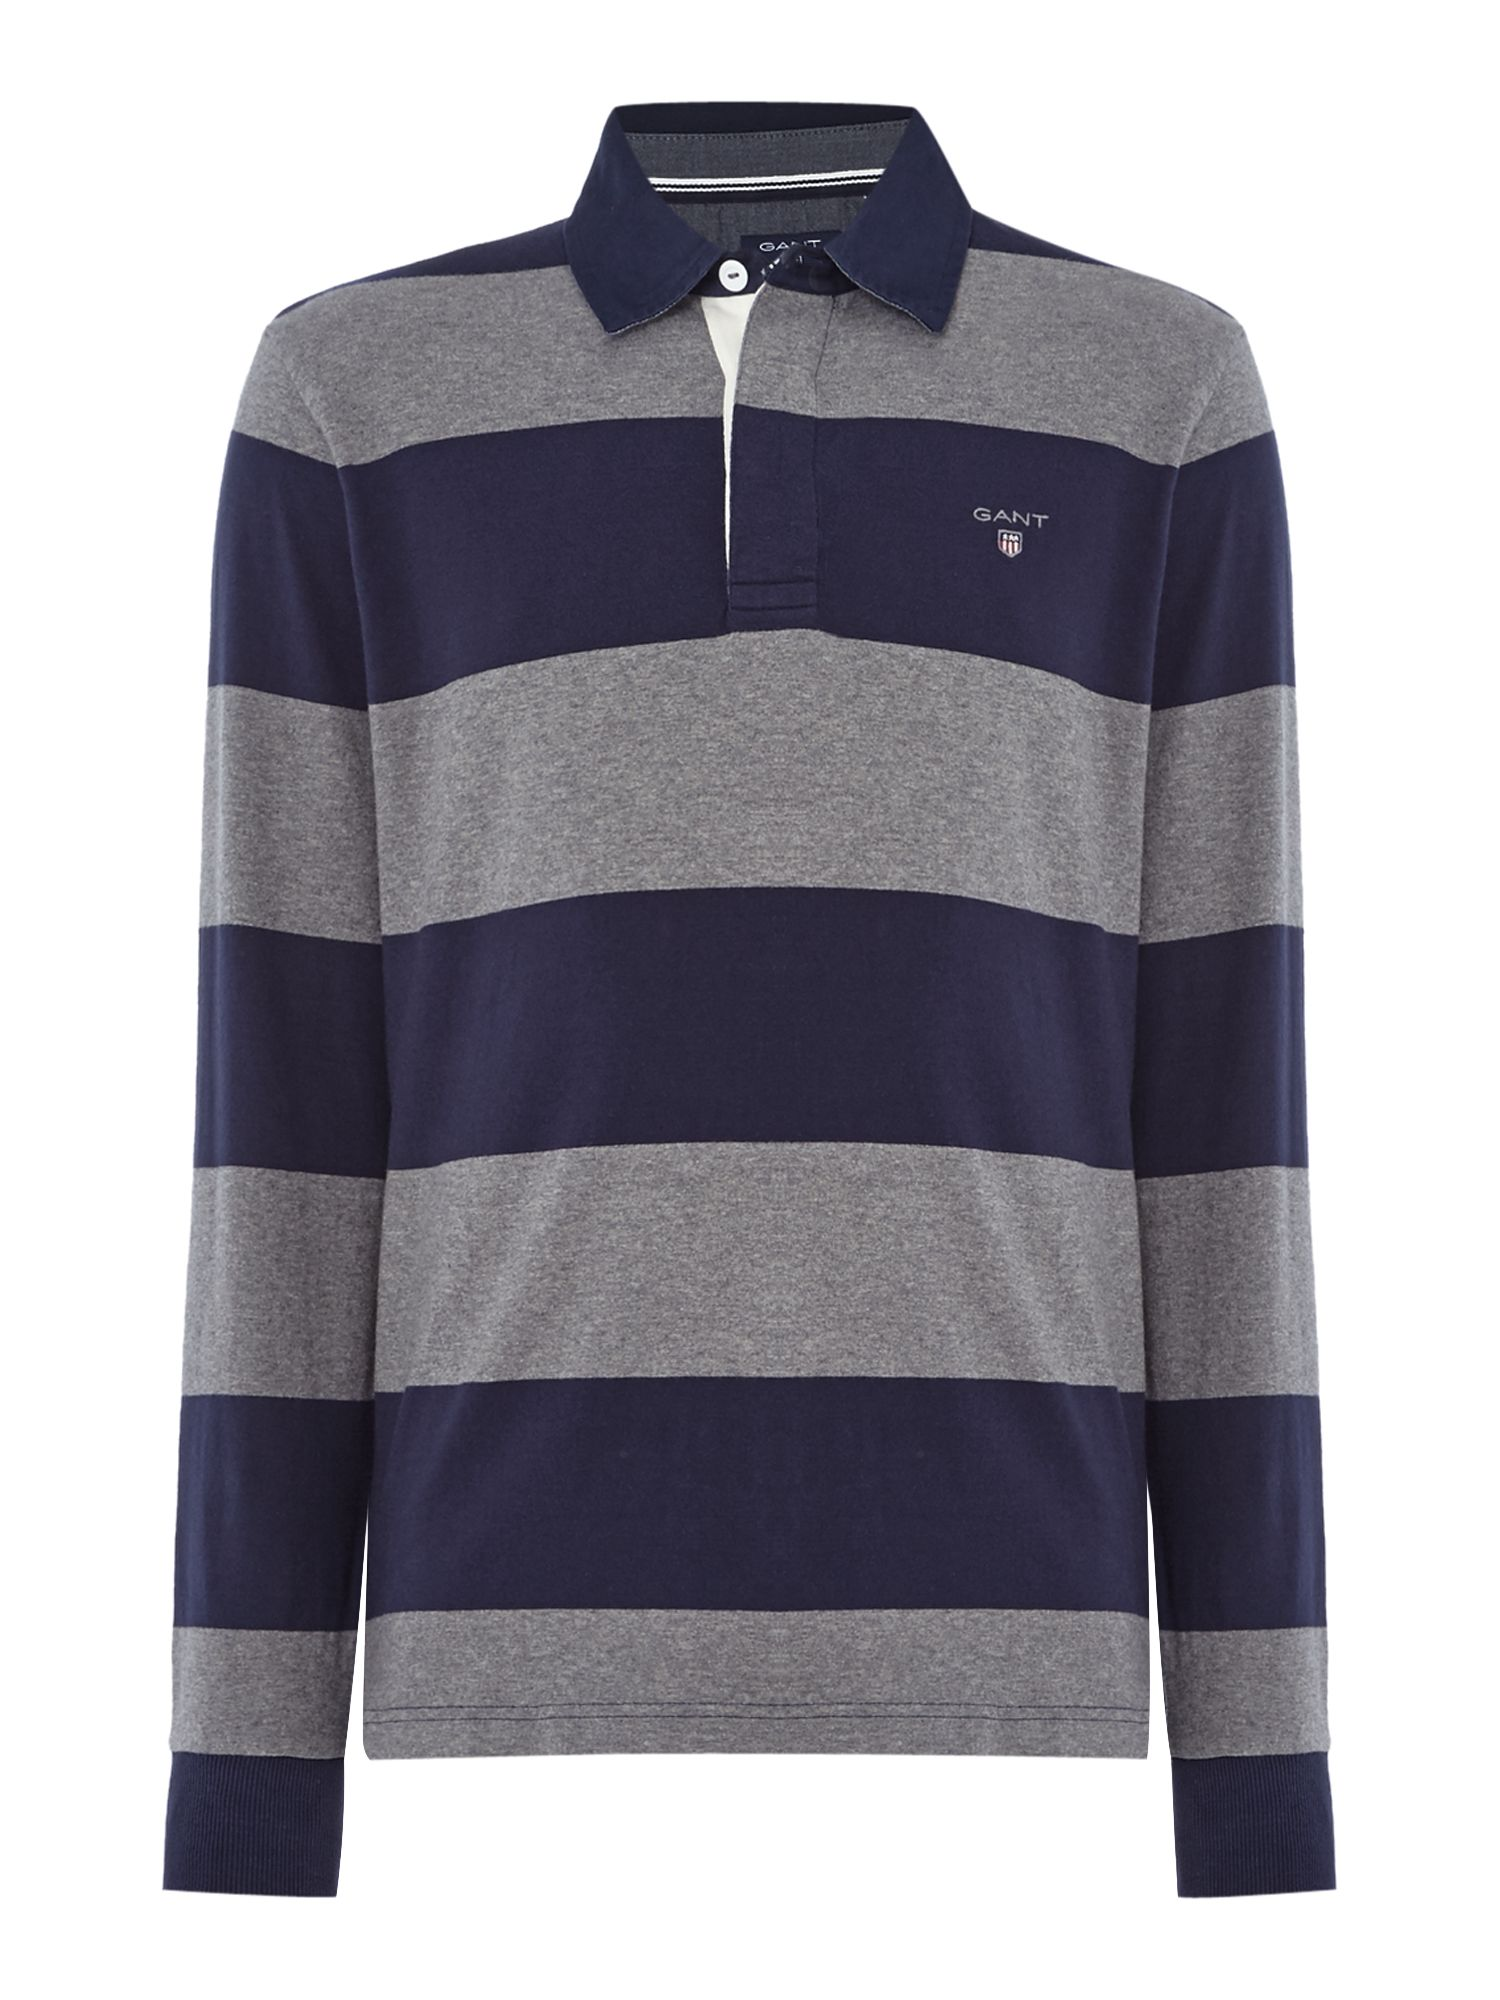 Men's Gant Striped Long-Sleeve Rugby Shirt, Grey